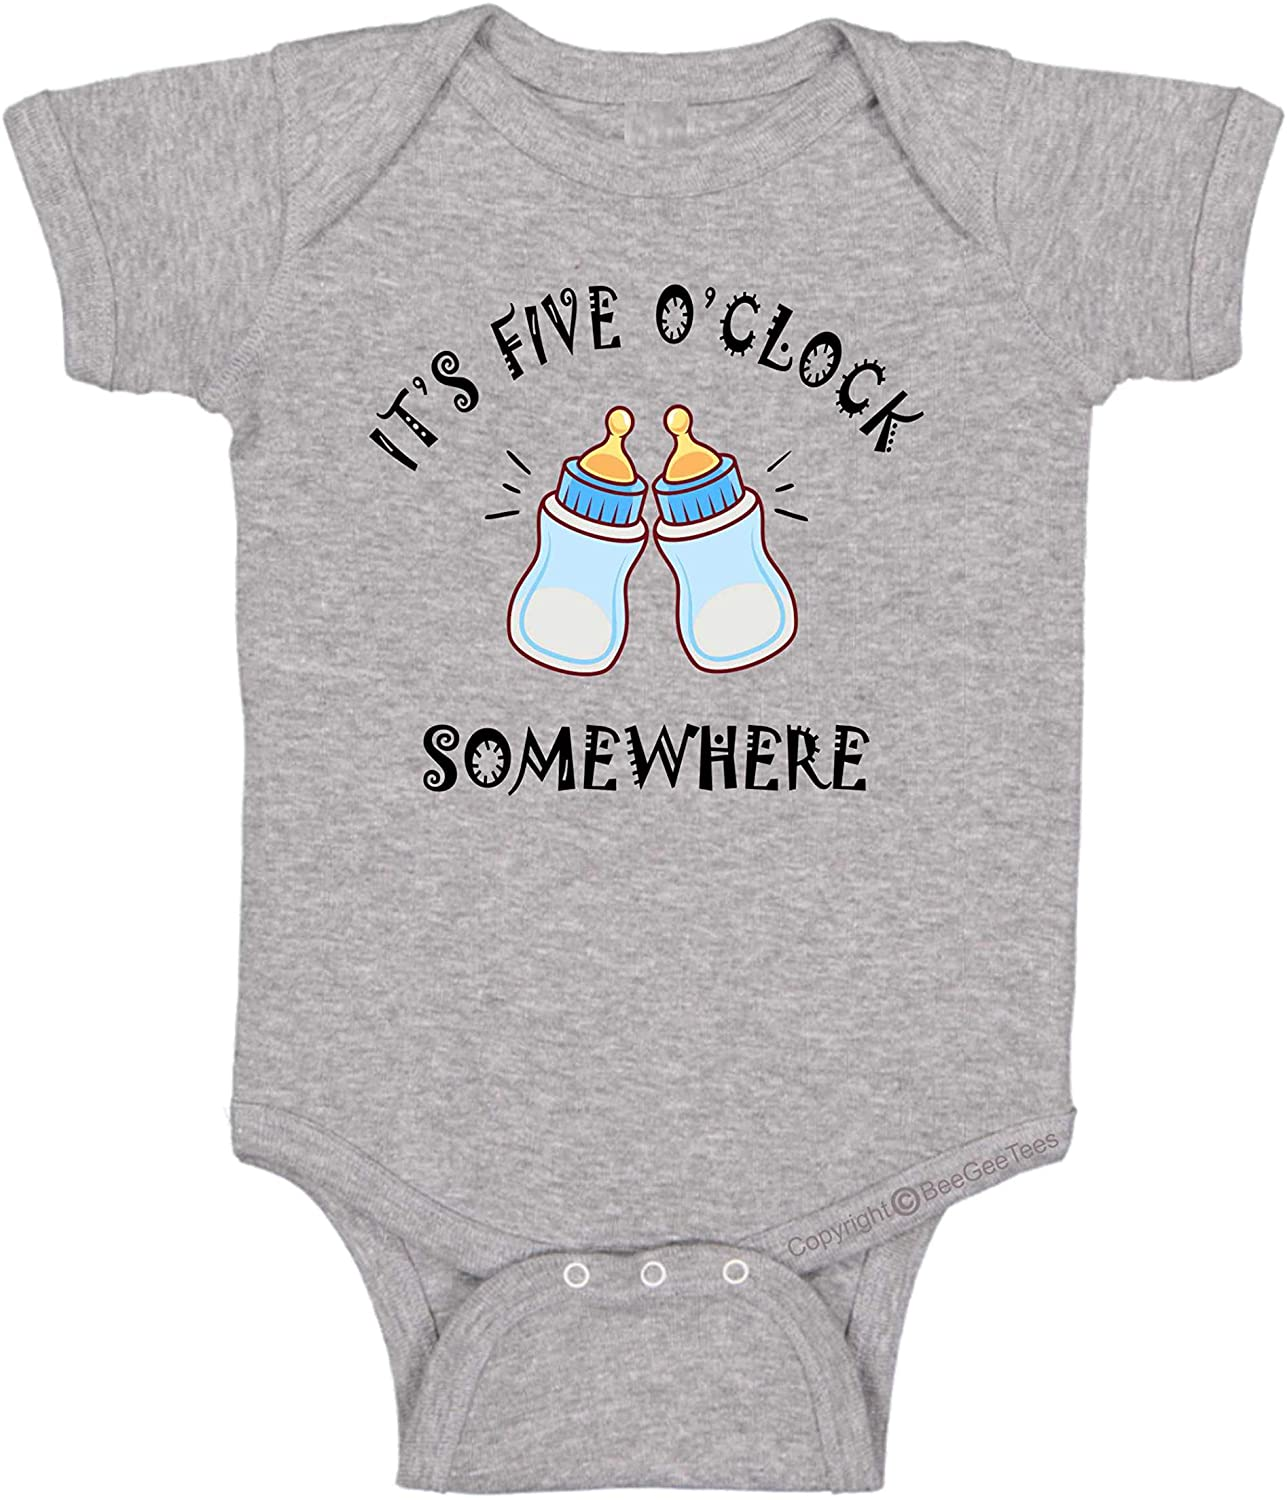 BeeGeeTees Funny Baby It's 5 o'clock Somewhere Infant Bodysuit Romper One Piece (Boys and Girls)